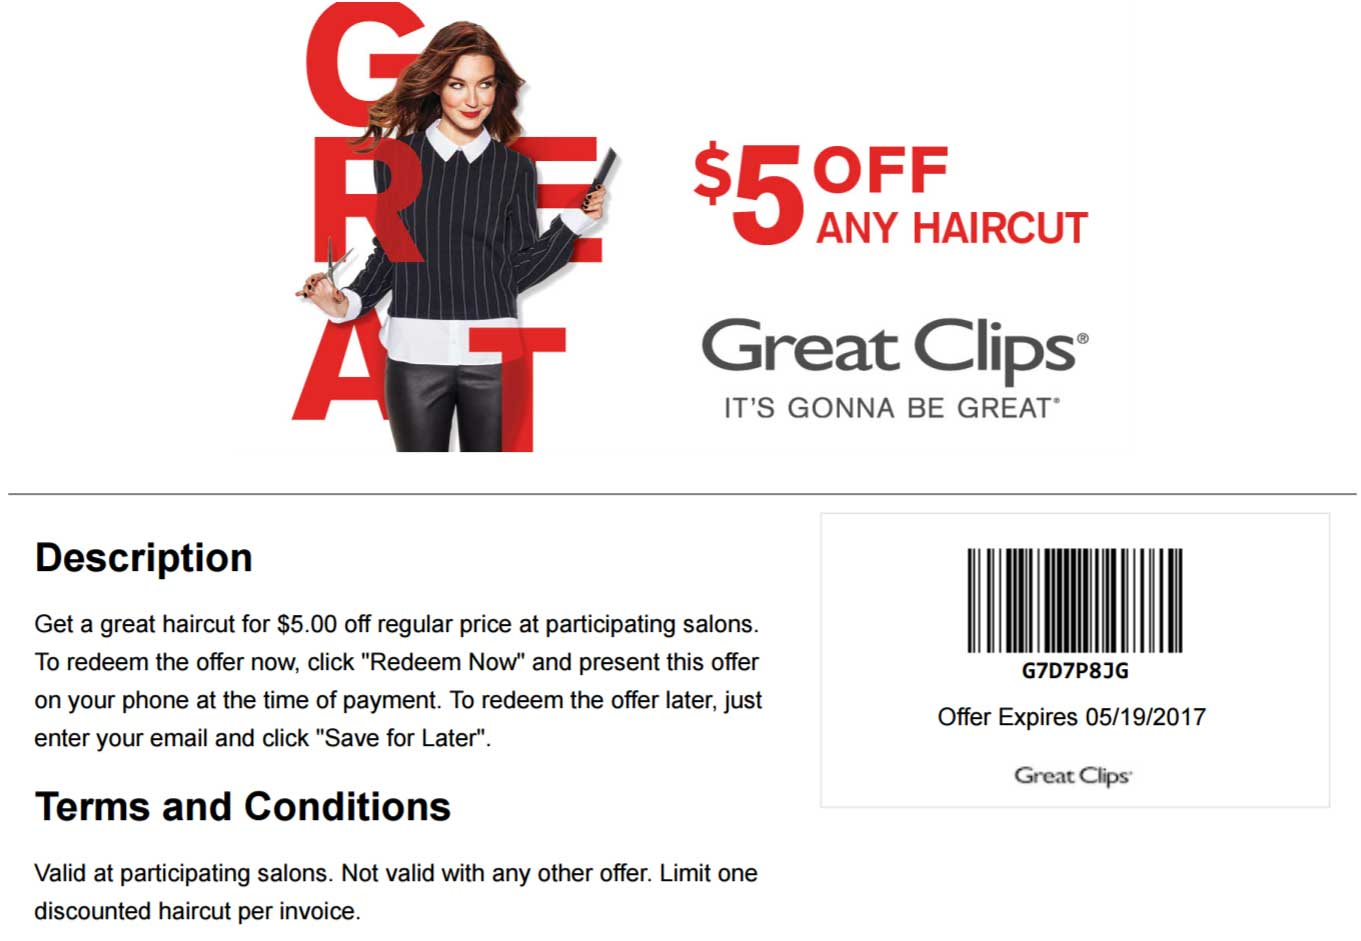 Great Clips Coupon May 2017 $5 off a haircut at Great Clips